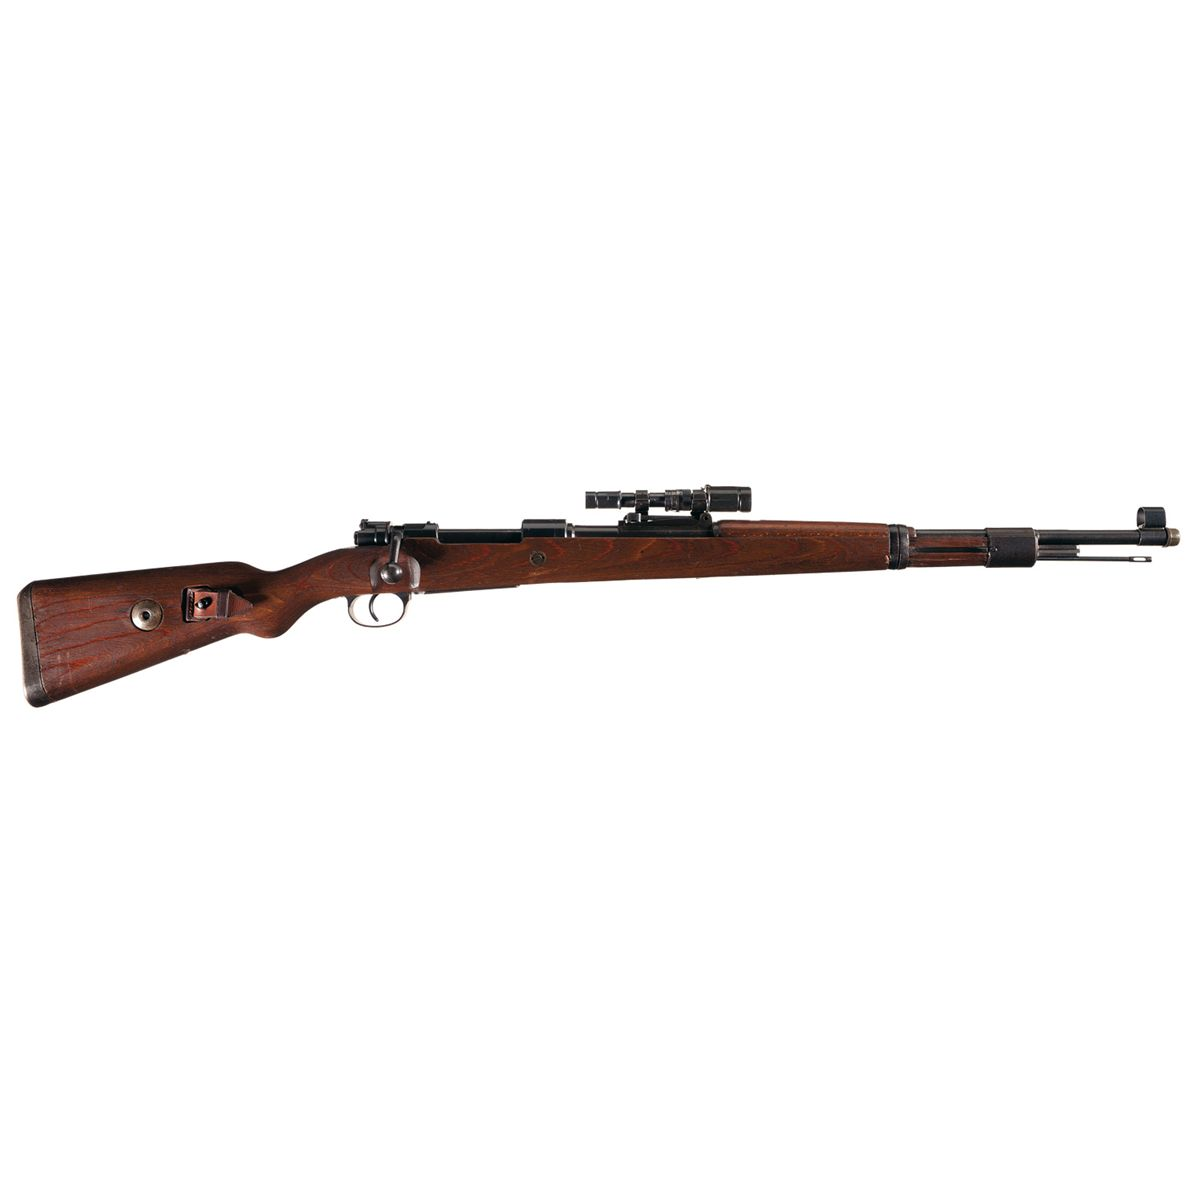 Very Rare WWII Mauser/Gustloff Rare Dual Code BCD/AR 43 K98 Bolt Action  Rifle with Leather Sling, Sc